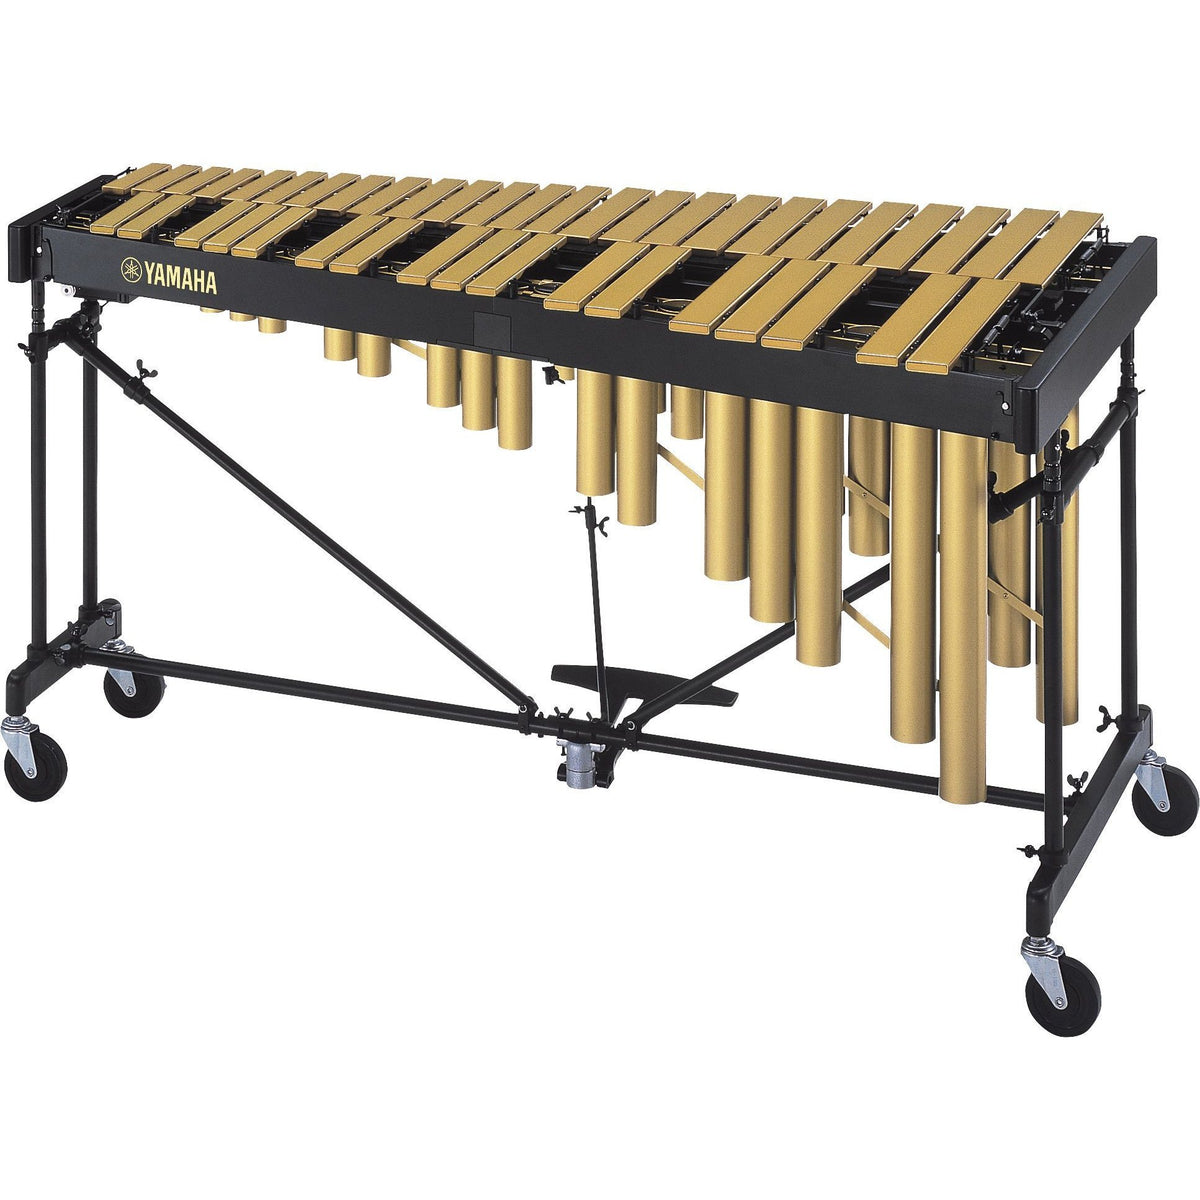 Yamaha - YV-3910M - Vibraphone (3 1/2-Octave)-Percussion-Yamaha-Music Elements